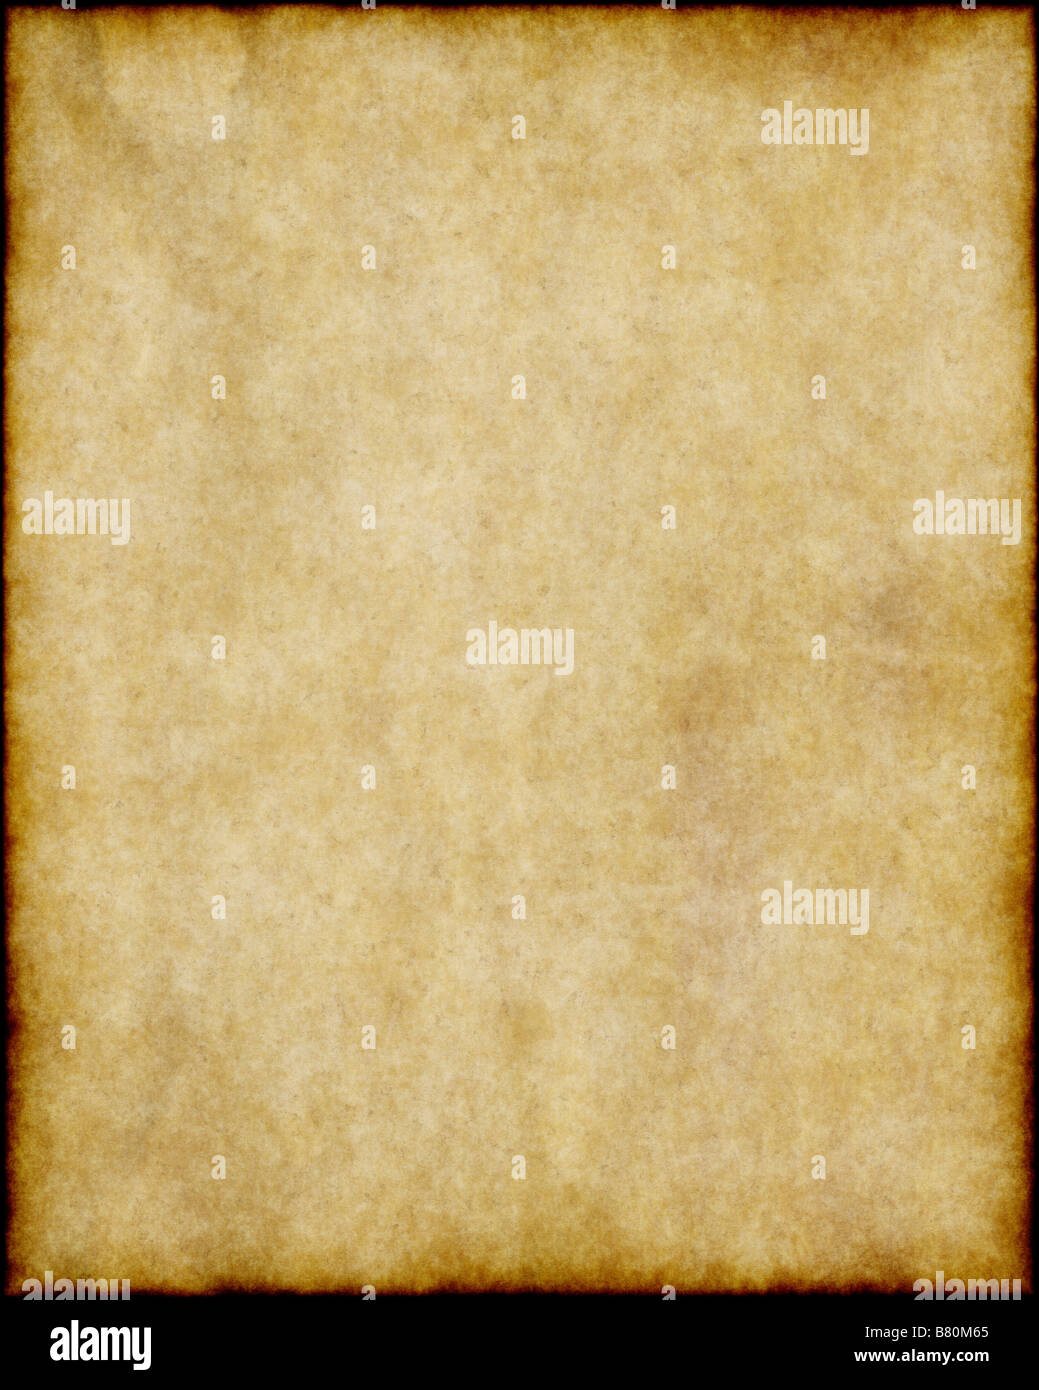 old worn parchment paper background texture image - Stock Image